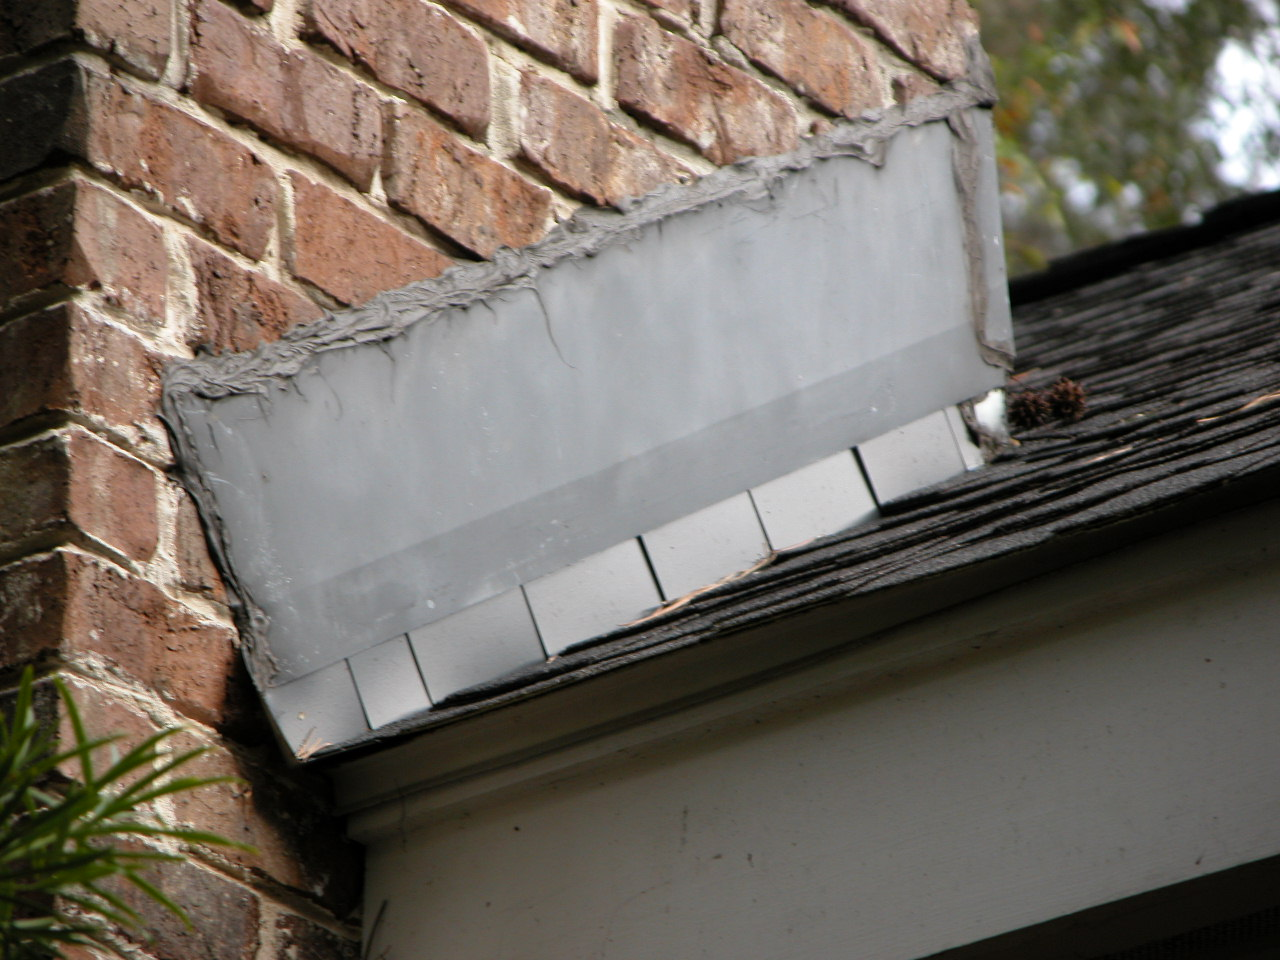 How Does Flashing Protect My Roof From Potential Leaks